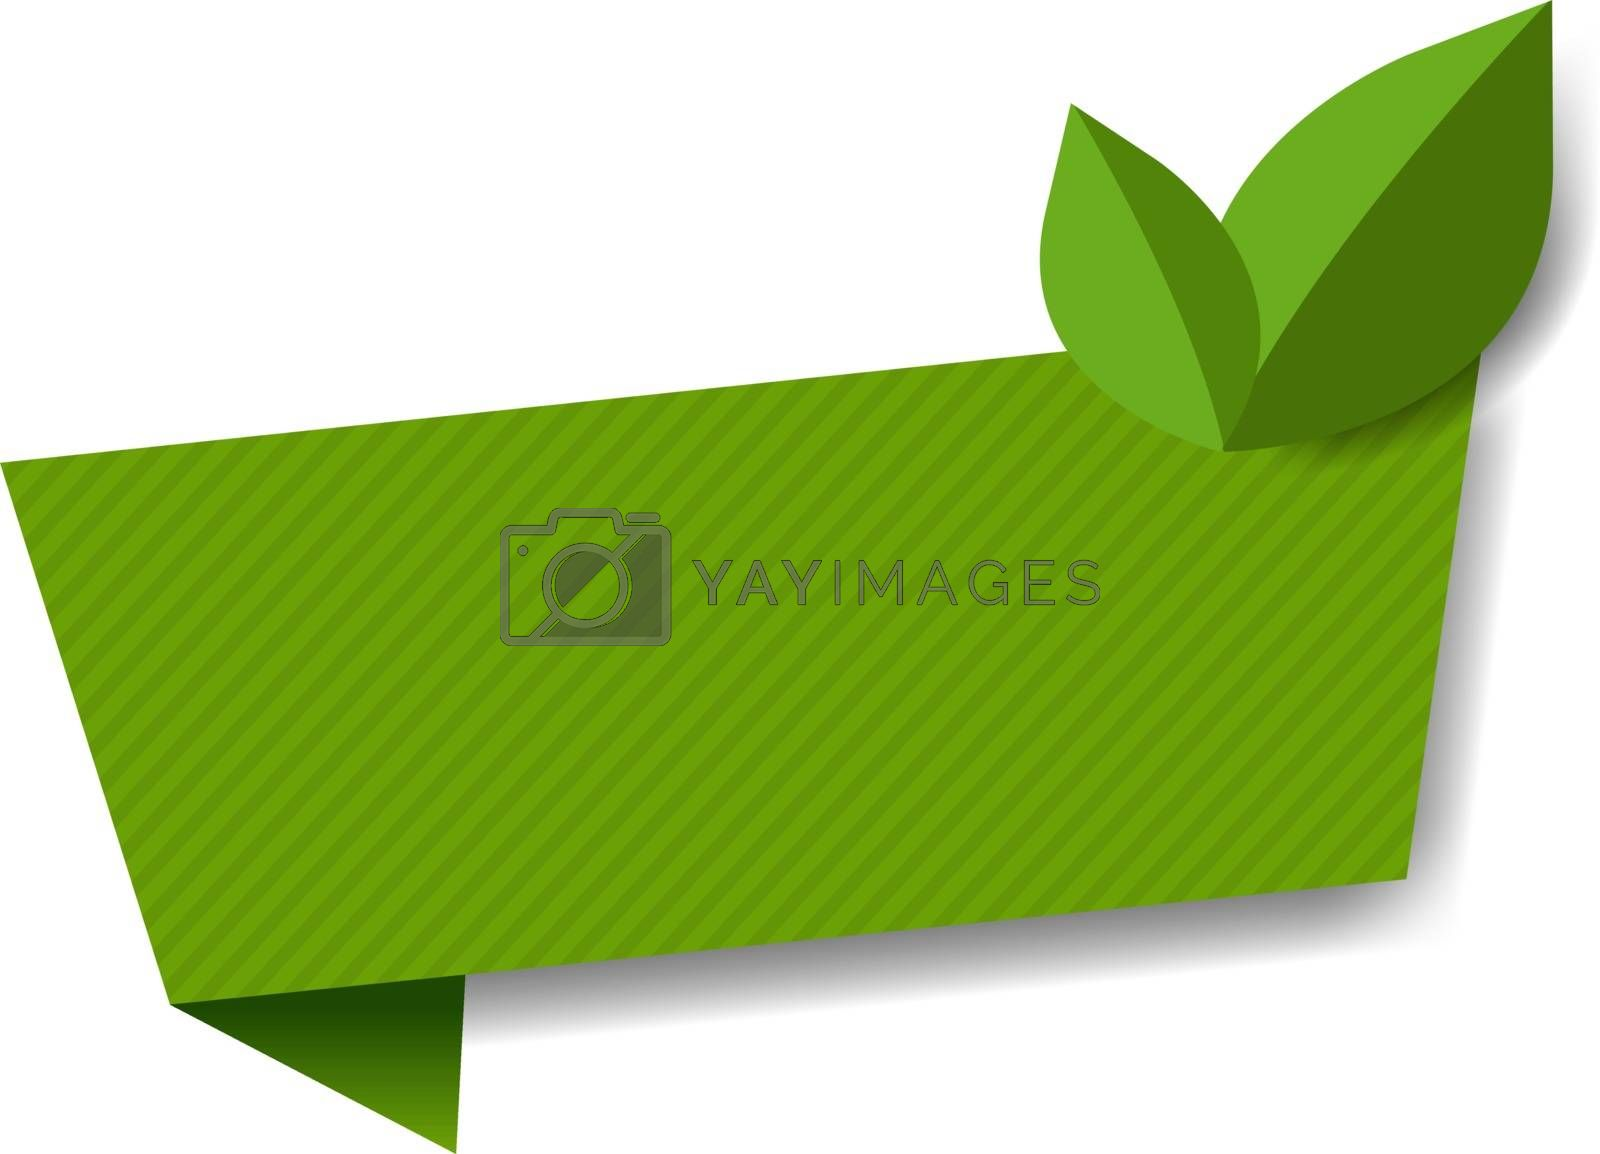 Label With Leaves White Background With Gradient Mesh, Vector Illustration